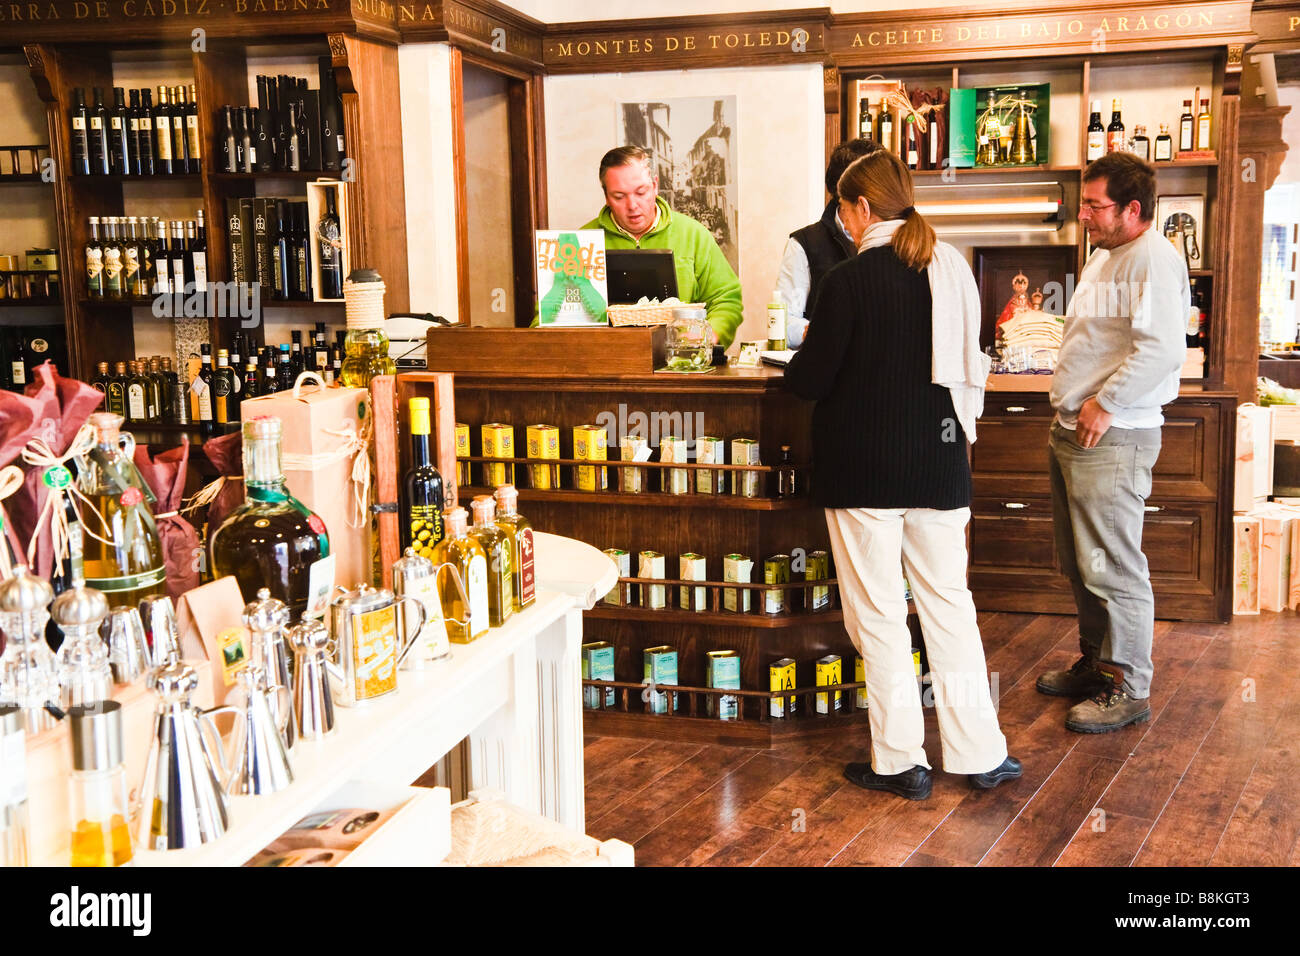 Marbella Malaga Province Costa del Sol Spain Specialty shopping for olive oil and olive oil products - Stock Image